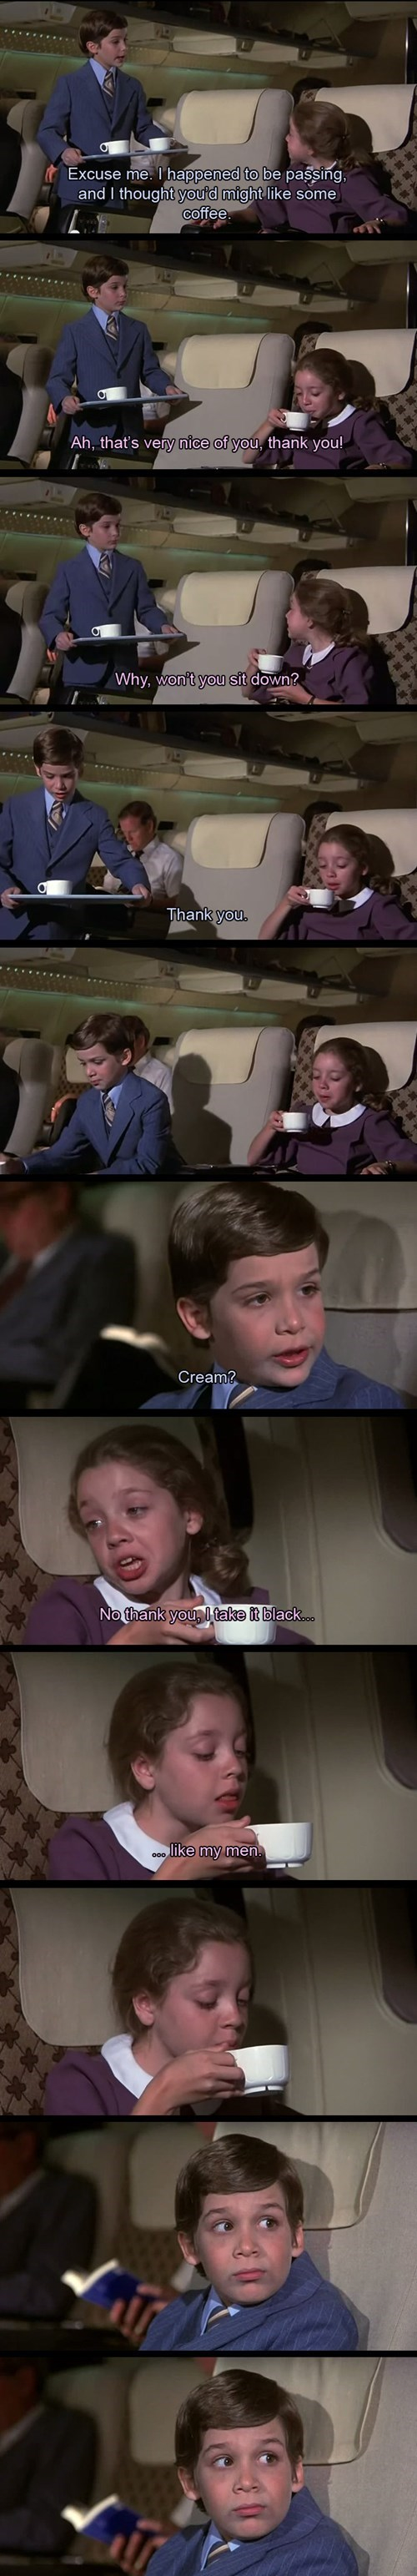 men,movies,funny,airplane